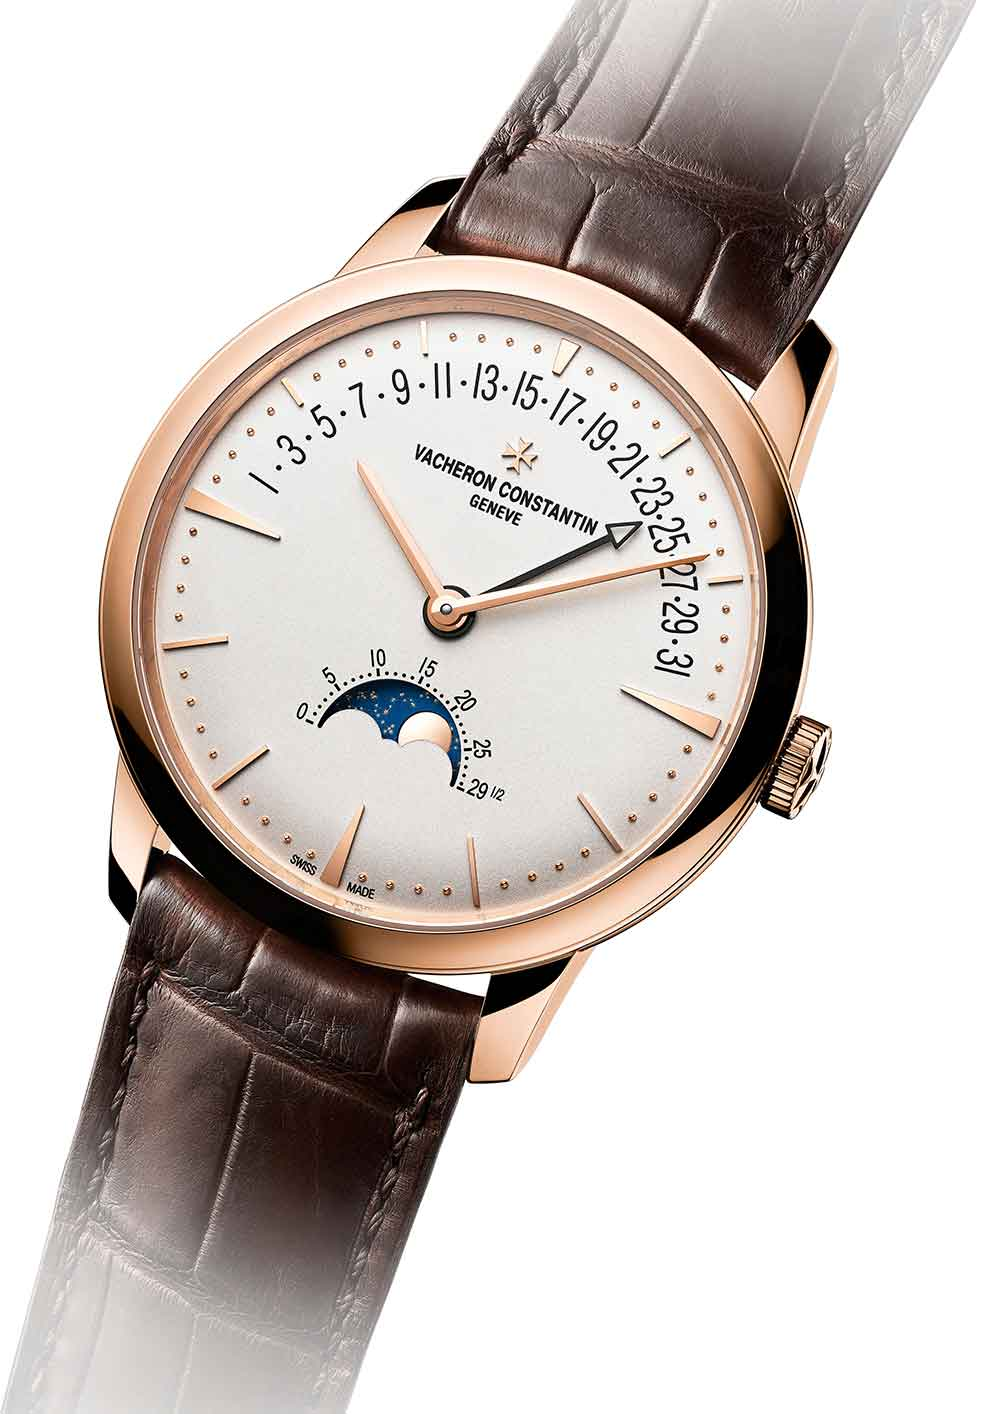 Vacheron Constantin Patrimony Moon Phase and Retrograde Date, pink gold version